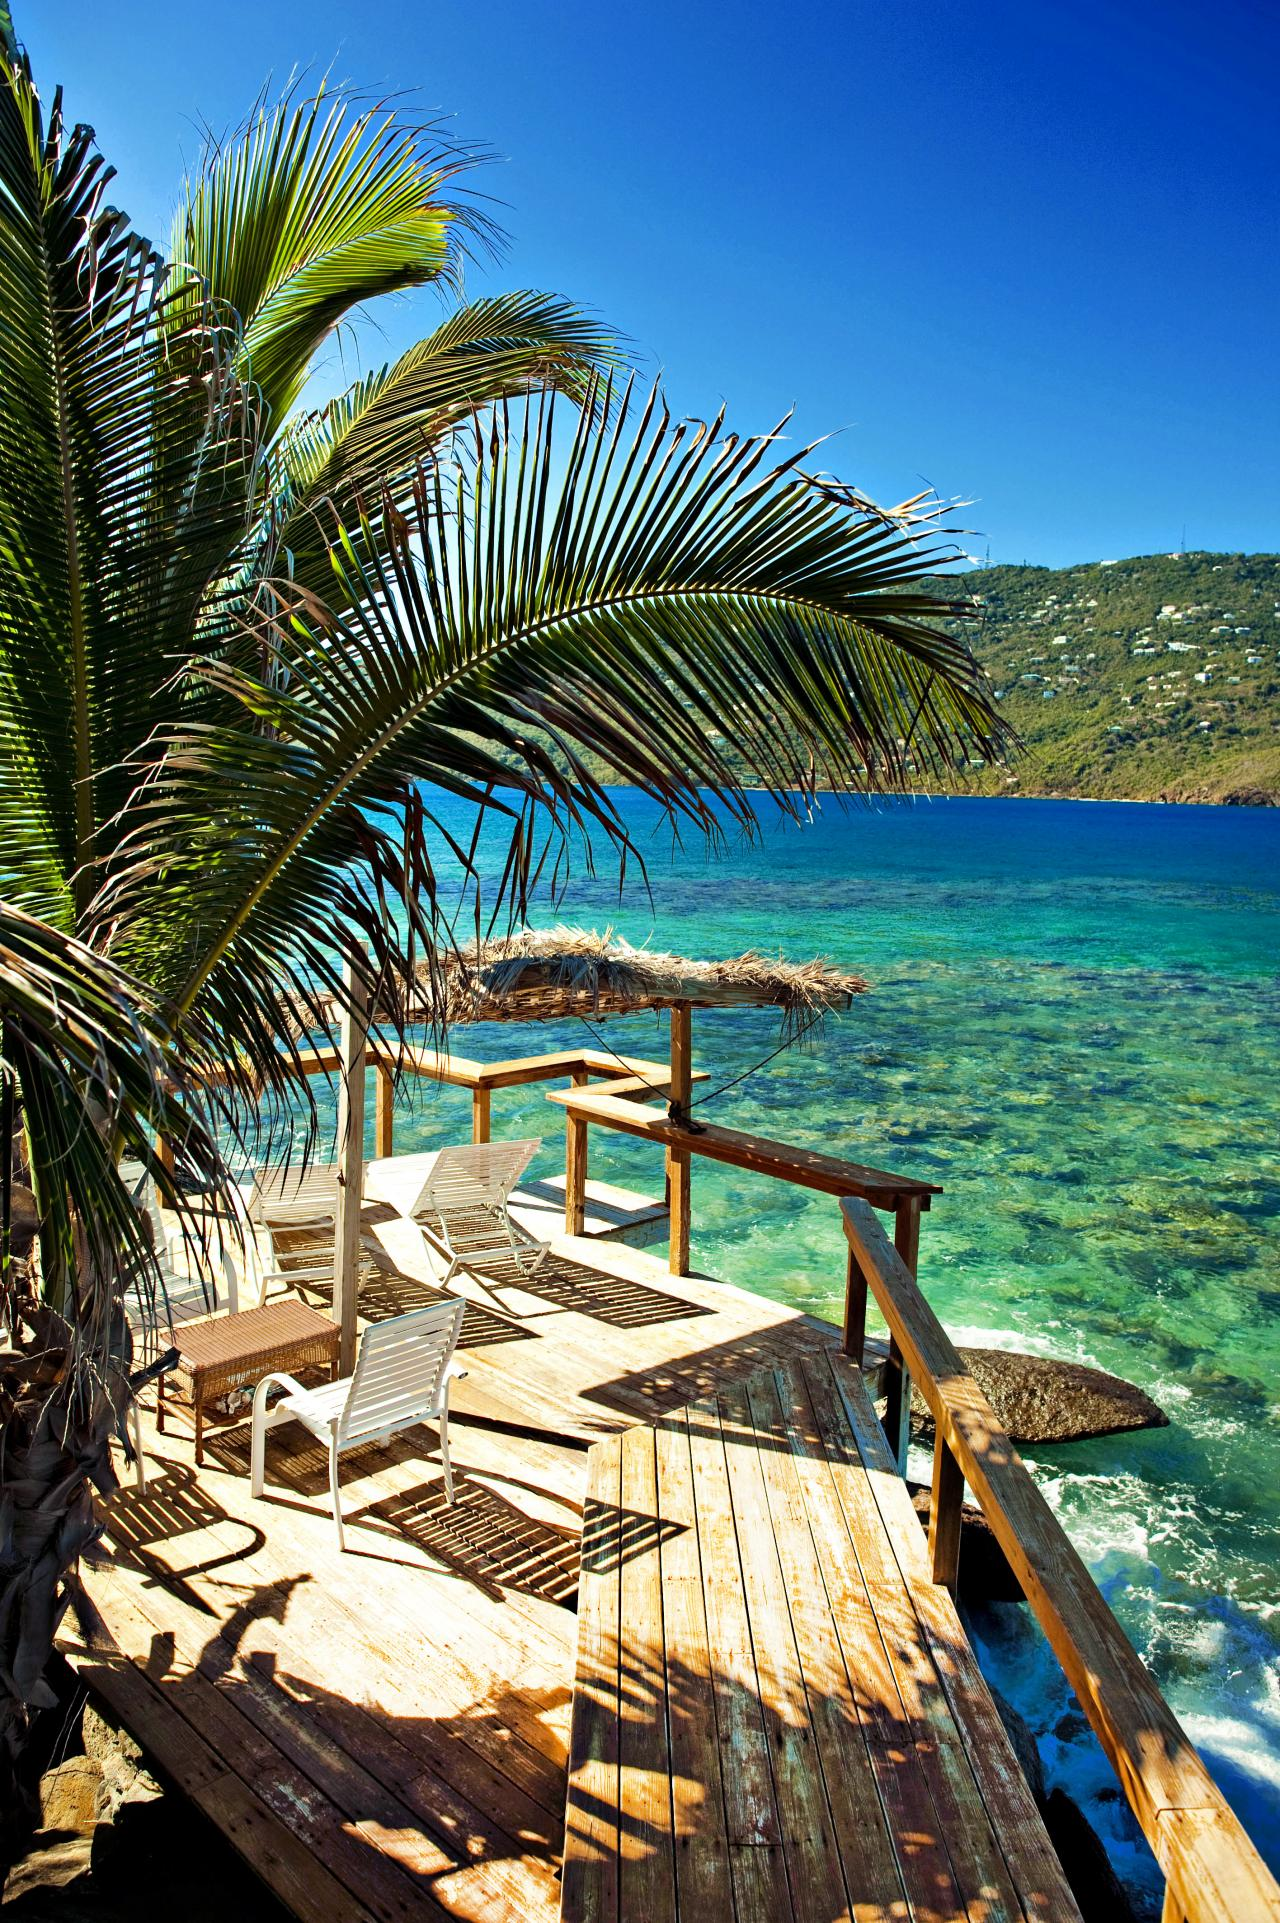 U.S Virgin Islands Villa vacation rentals Magens Bay St Thomas